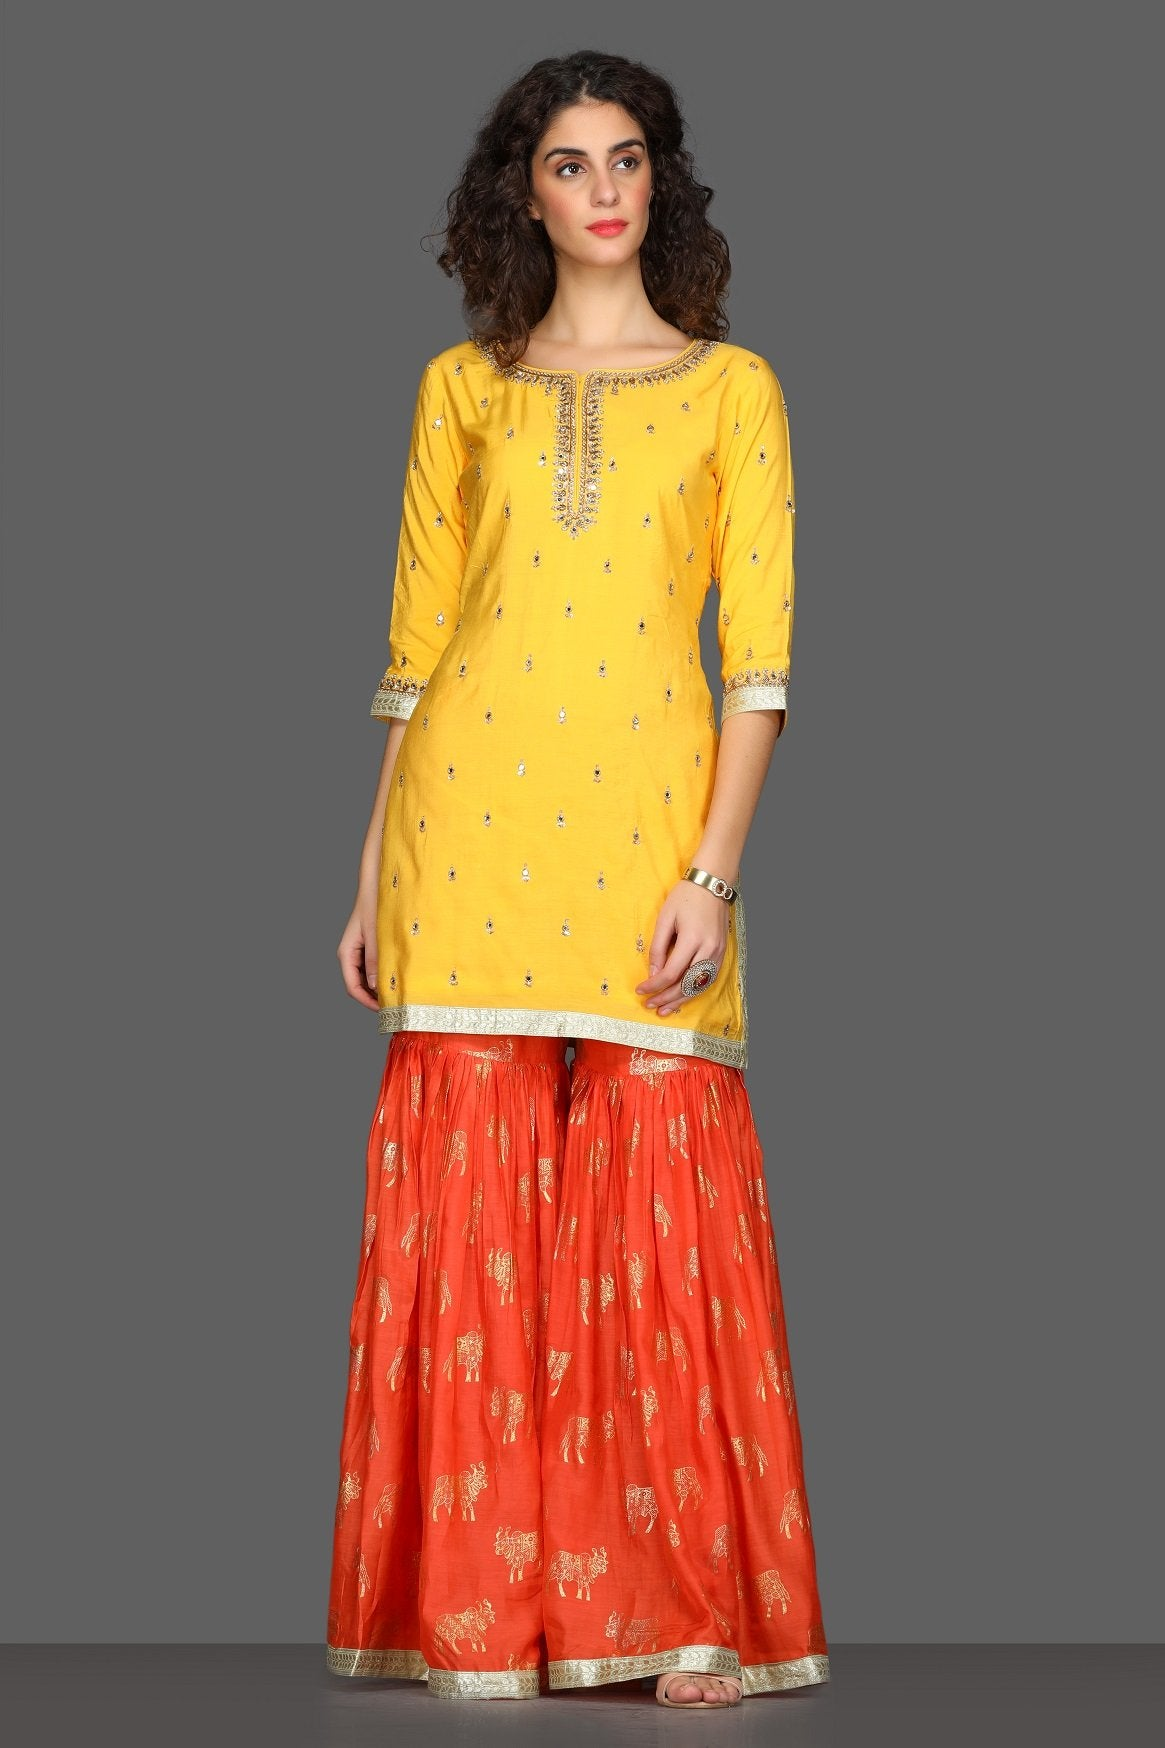 Buy bright yellow and red embroidered sharara suit online in USA with printed dupatta. Dazzle on weddings and special occasions with exquisite Indian designer dresses, sharara suits, Anarkali suits from Pure Elegance Indian fashion store in USA.-front